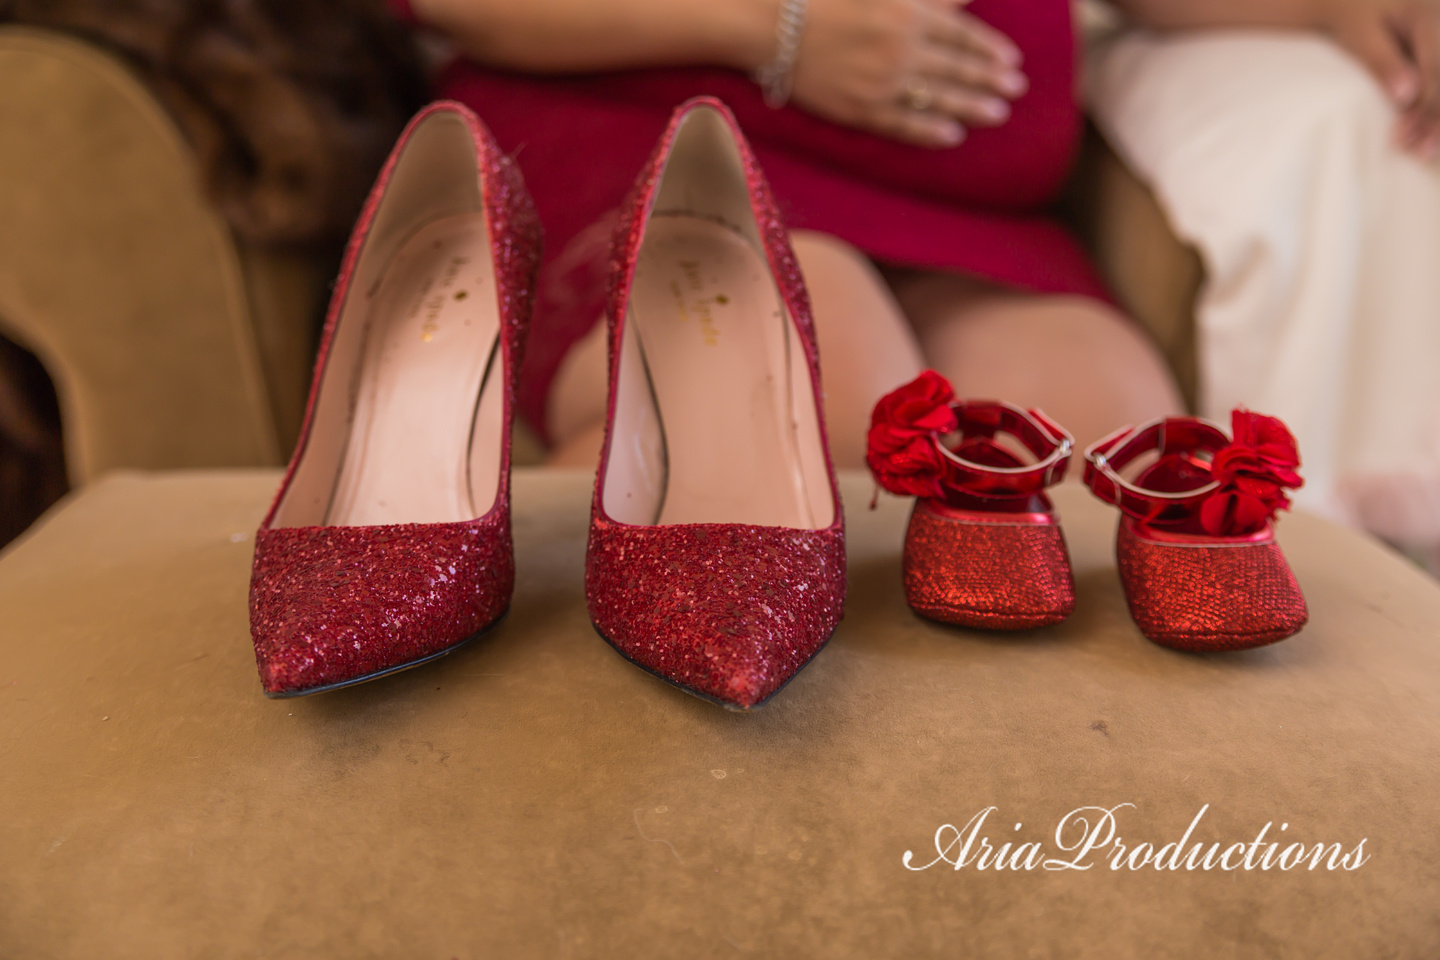 Mommy & me shoes. Mine are Kate Spade, worn on our wedding day!